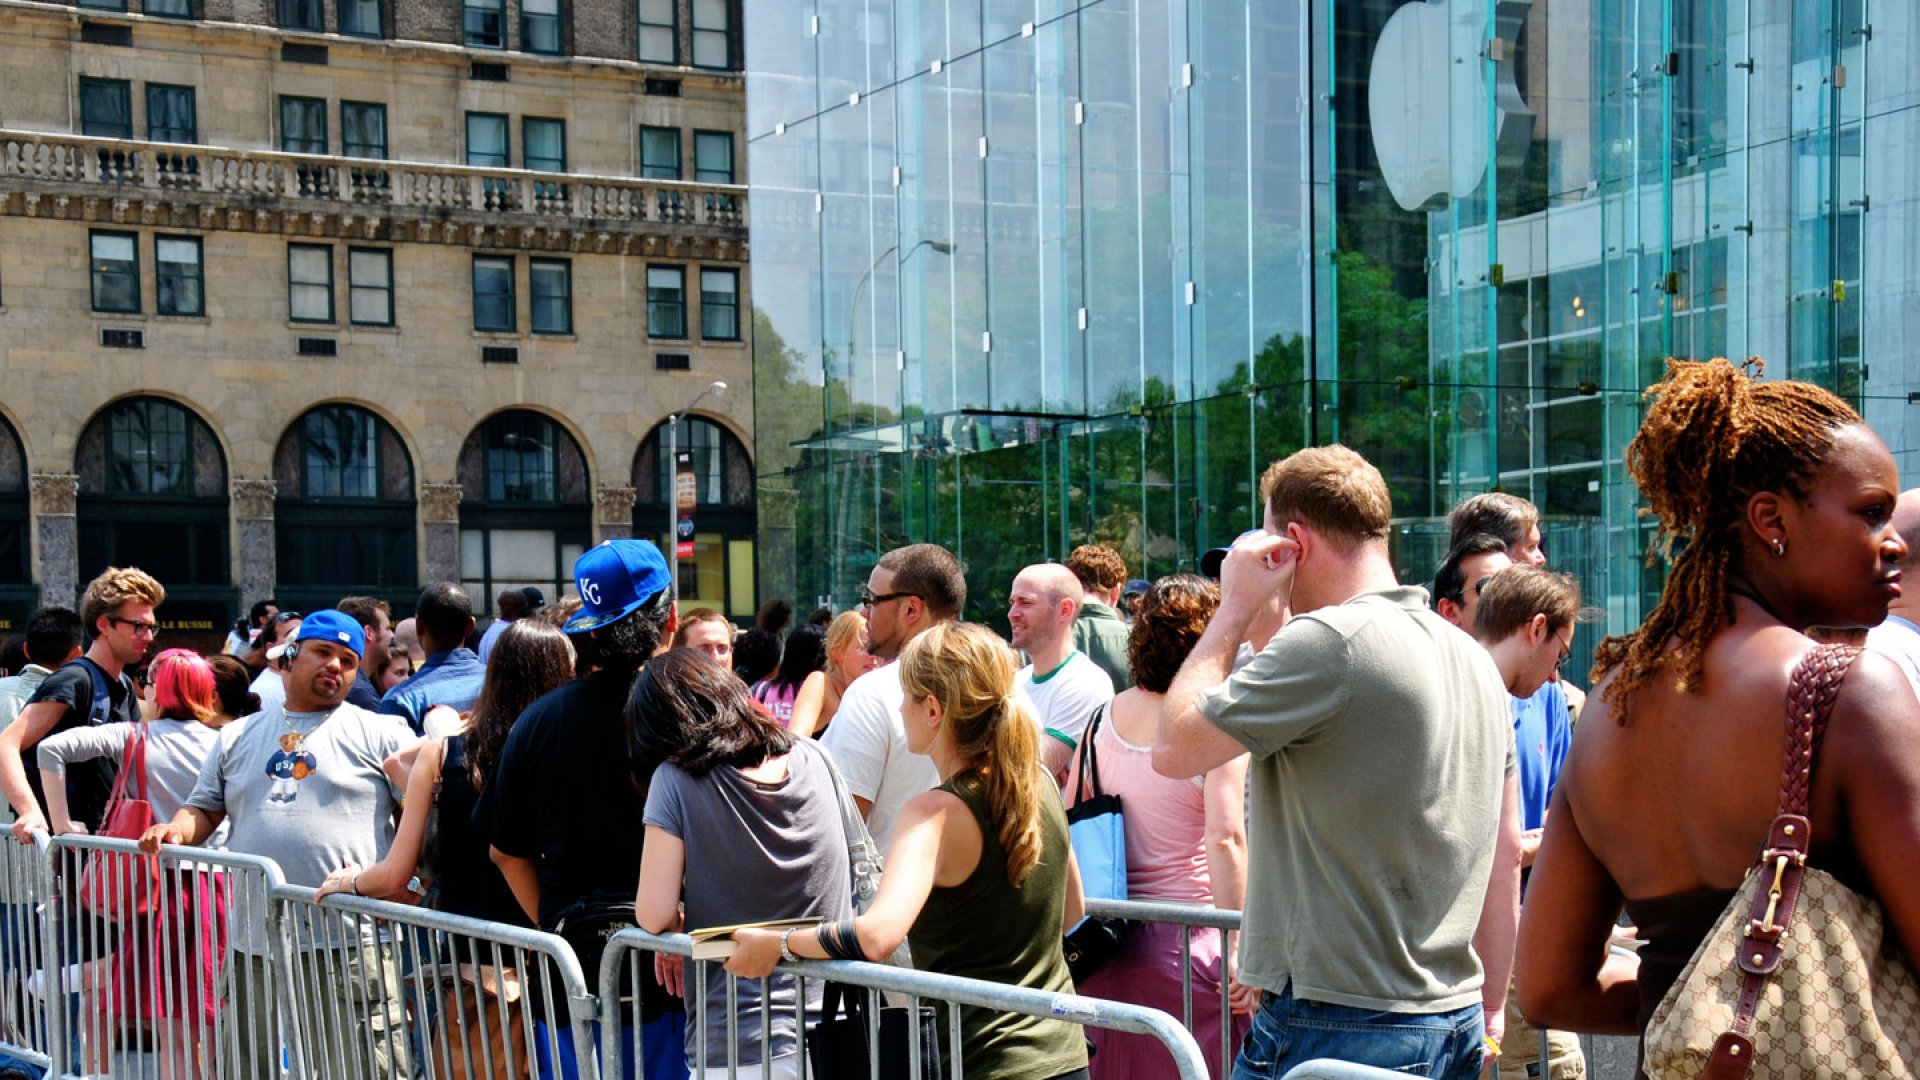 <b>The More, the Merrier:</b> Long lines for Apple's new releases are good news for Sena Cases.